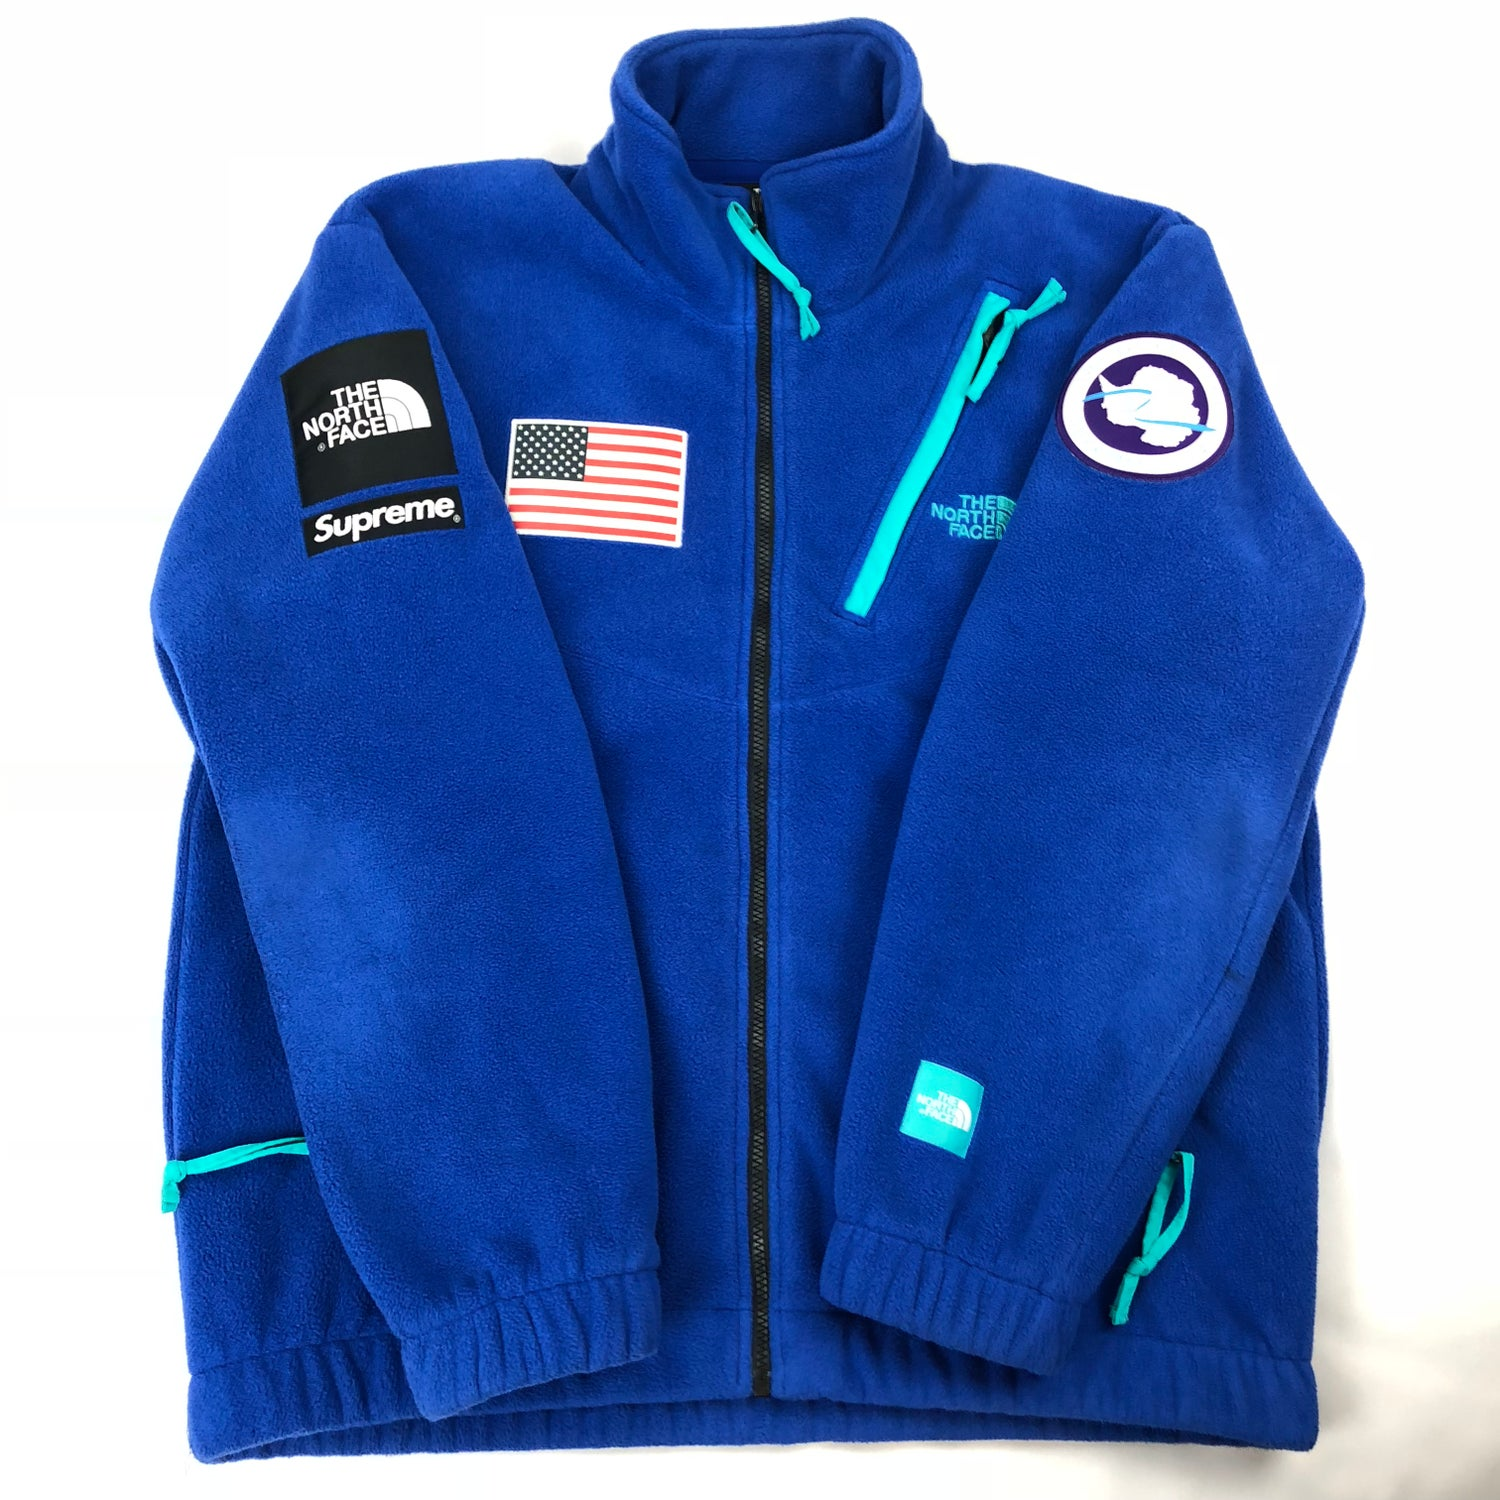 9b7e298a8 Supreme x The North Face Fleece Jacket